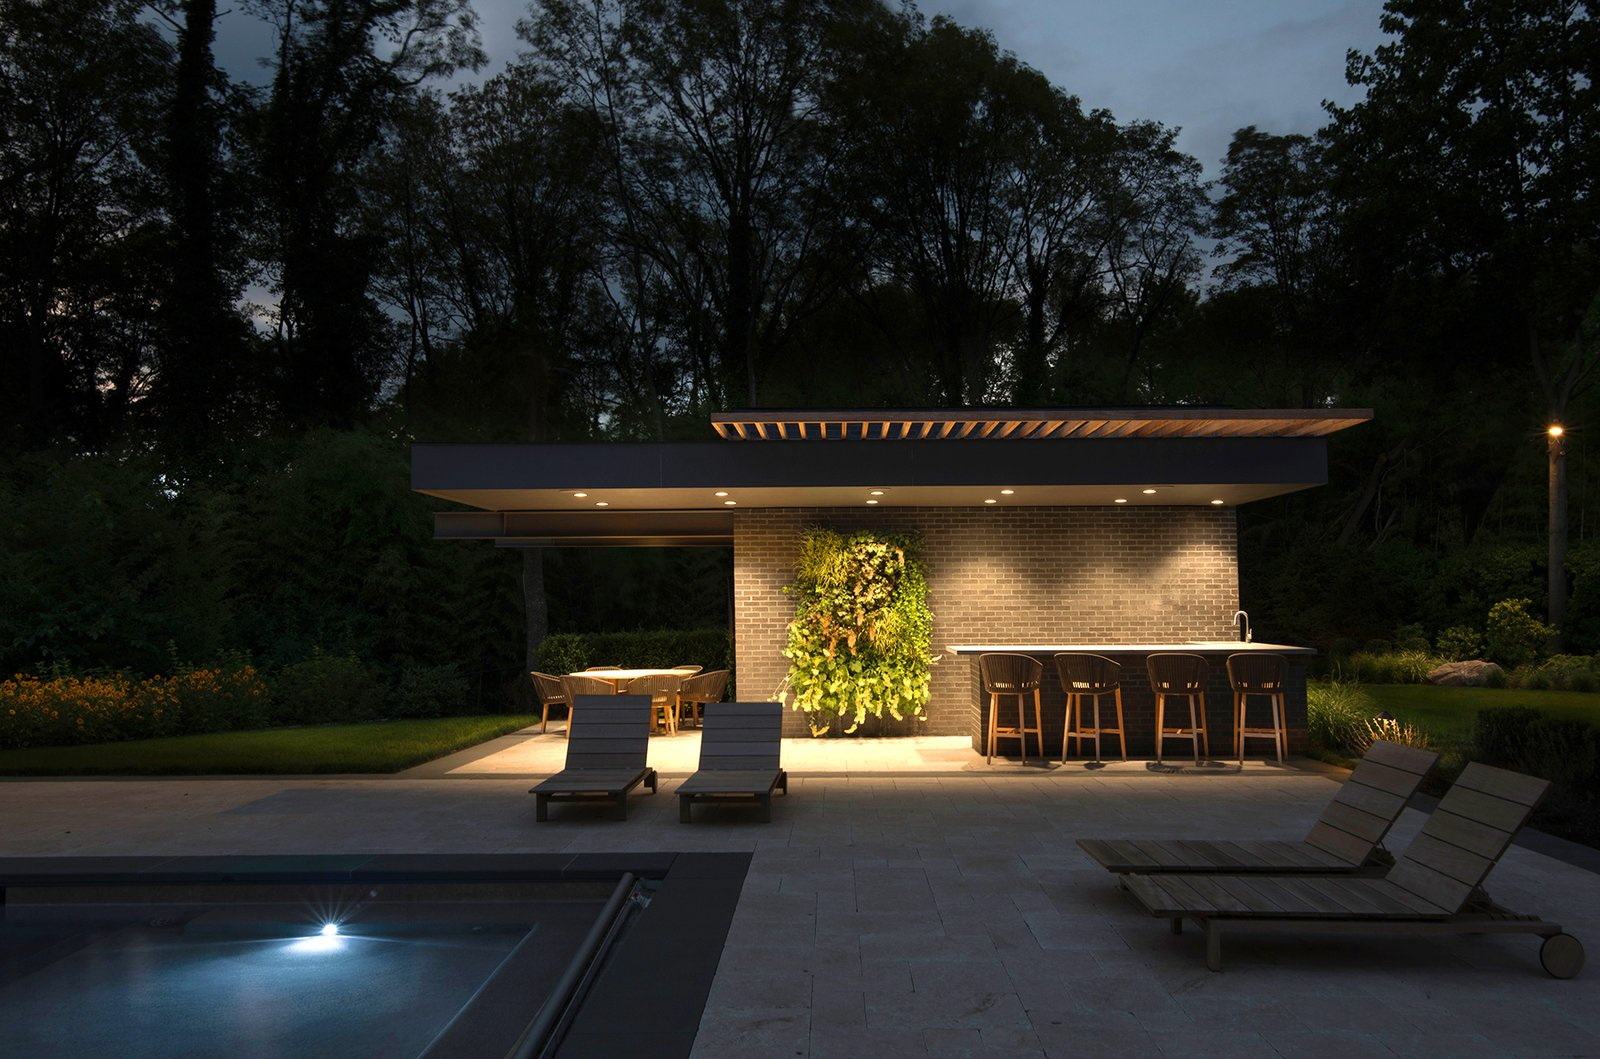 Lighting at UP Studio's Free Float Pool House creates a dramatic setting for entertaining at night.  Free Float Pool Cabana by The UP Studio